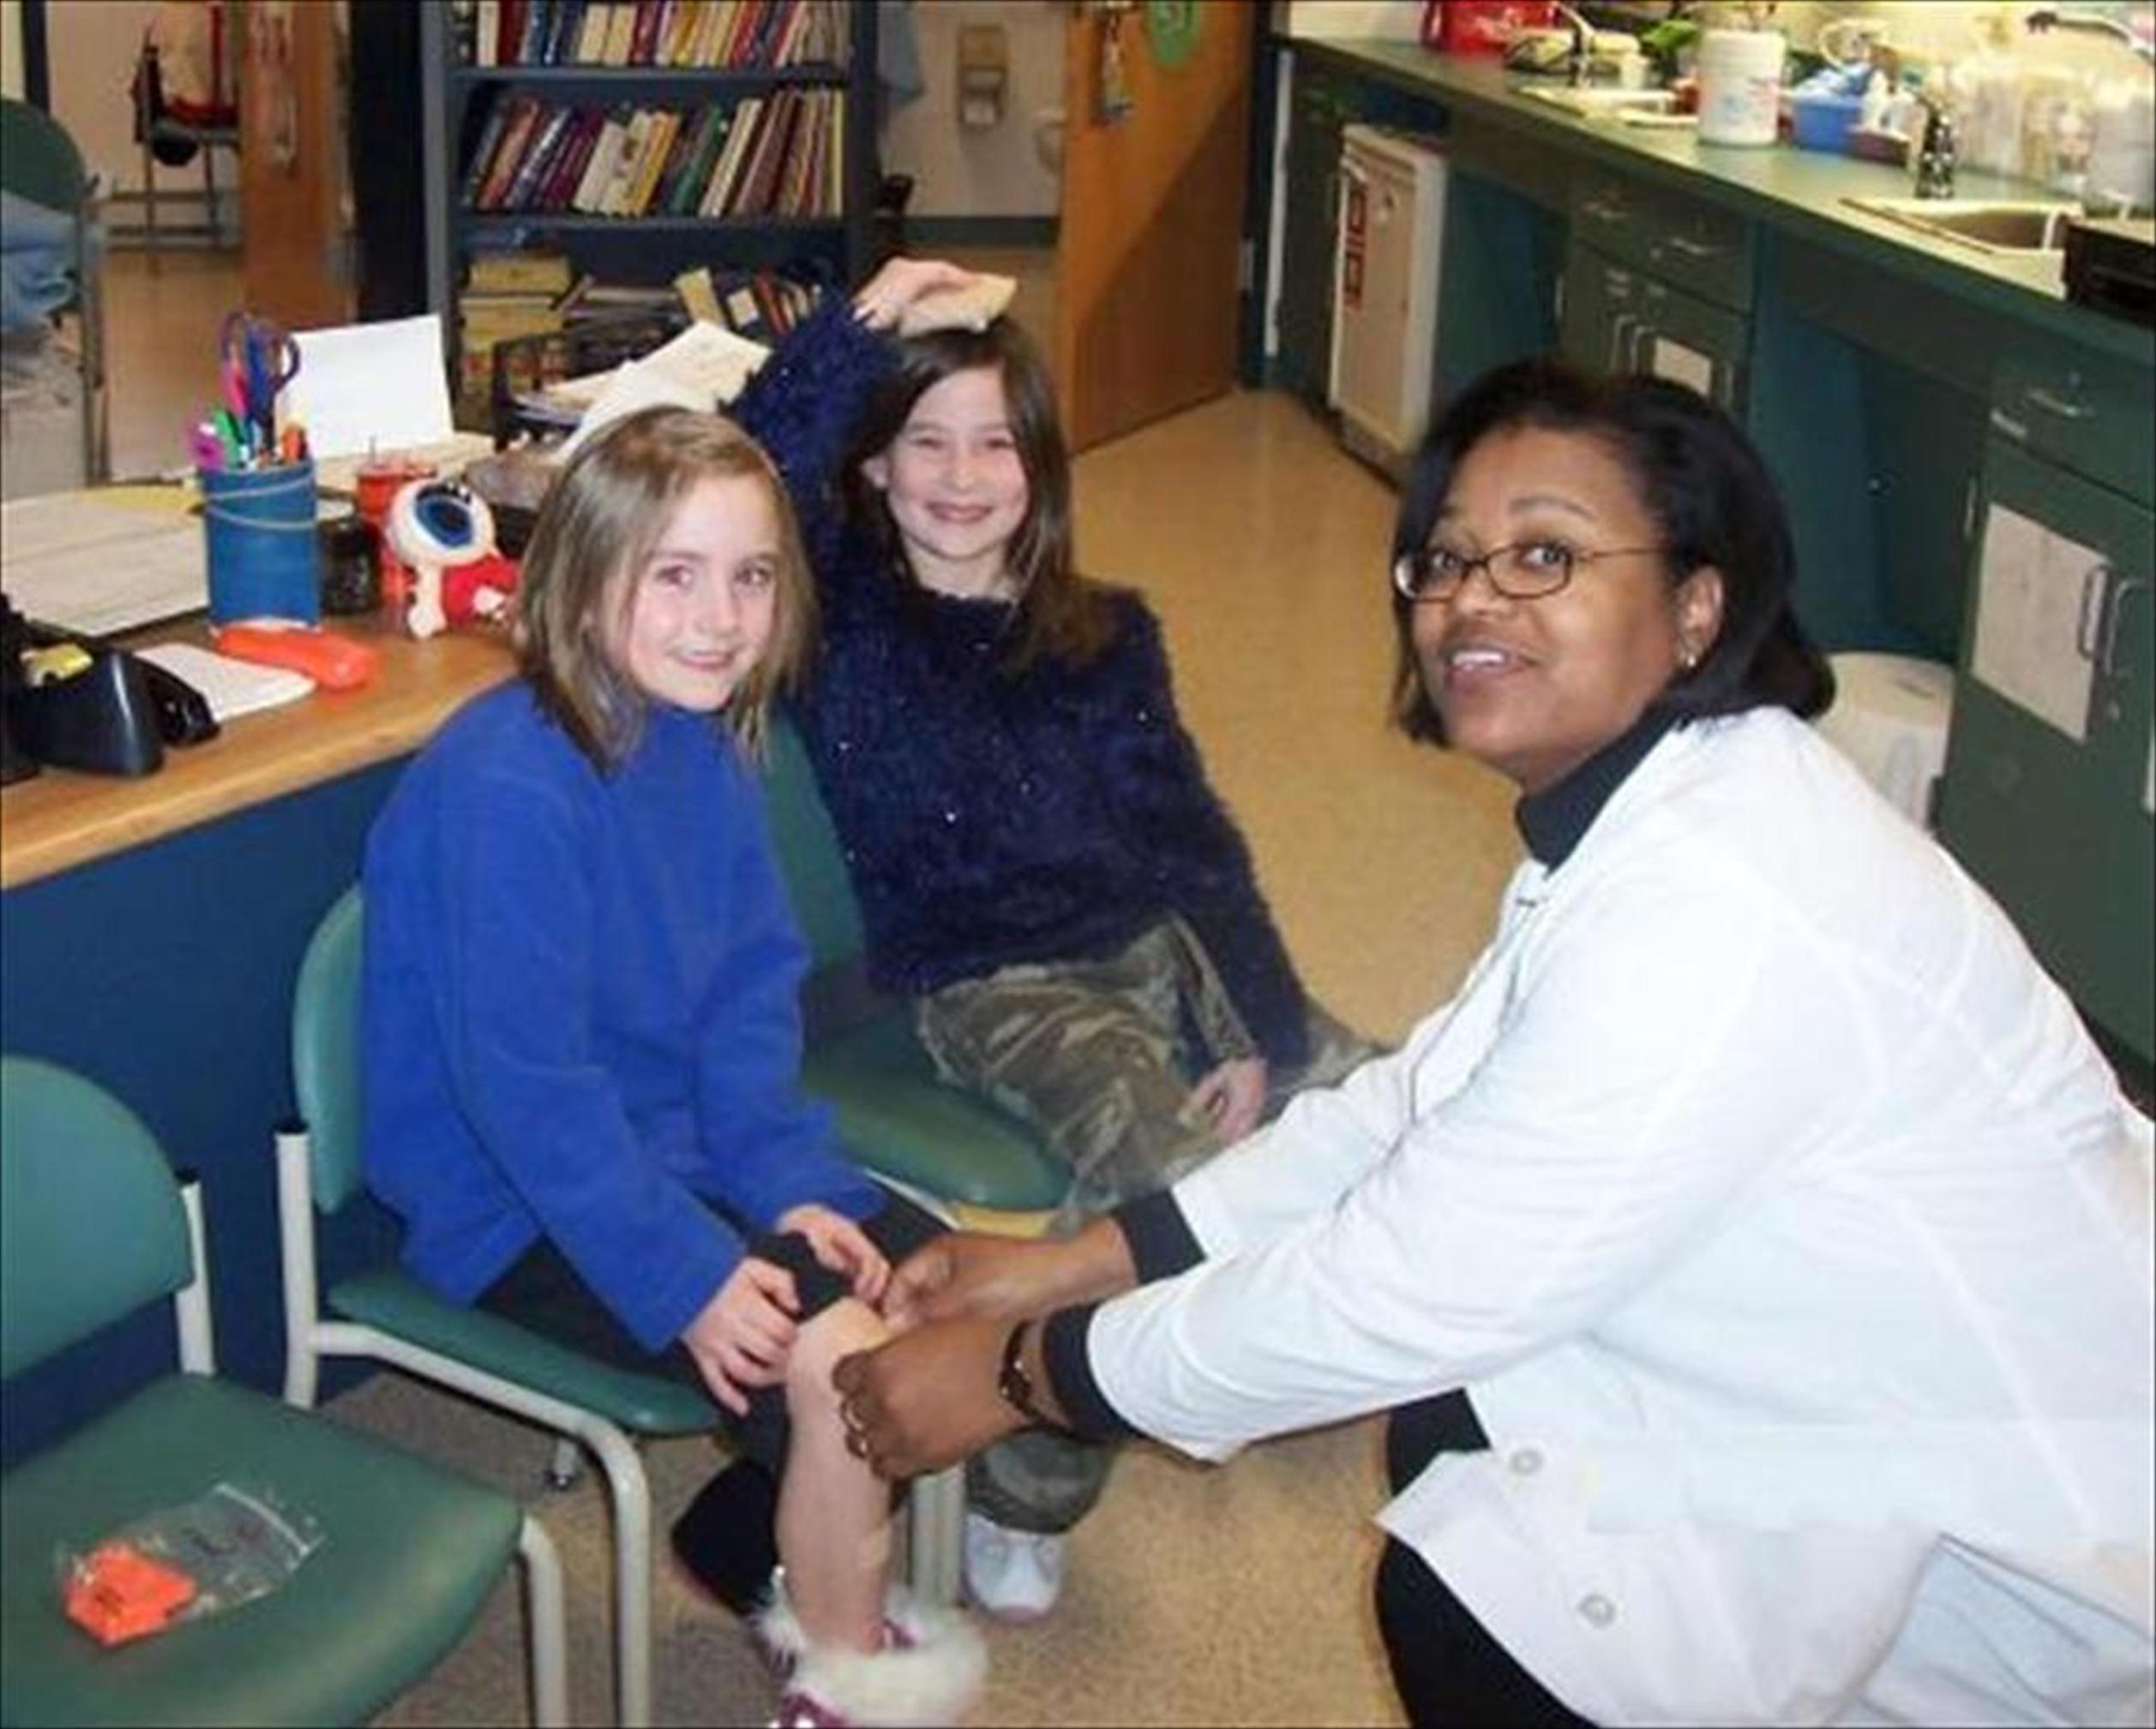 A nurse sits with 2 children and examines 1 of the children's knee.